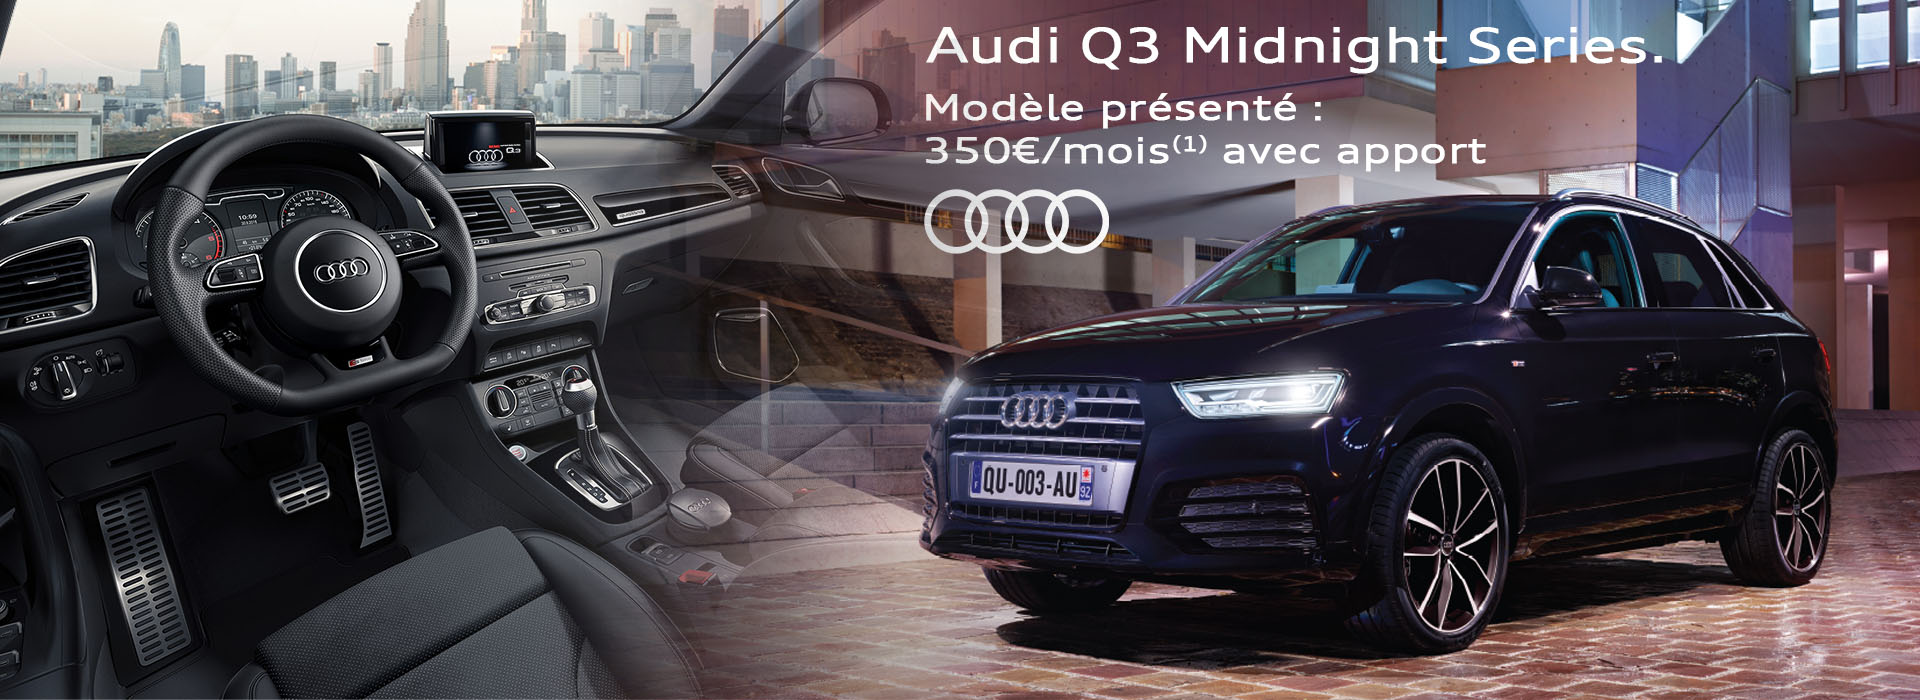 audi q3 midnight series promotions chez votre concessionnaire audi chartres olympic auto. Black Bedroom Furniture Sets. Home Design Ideas